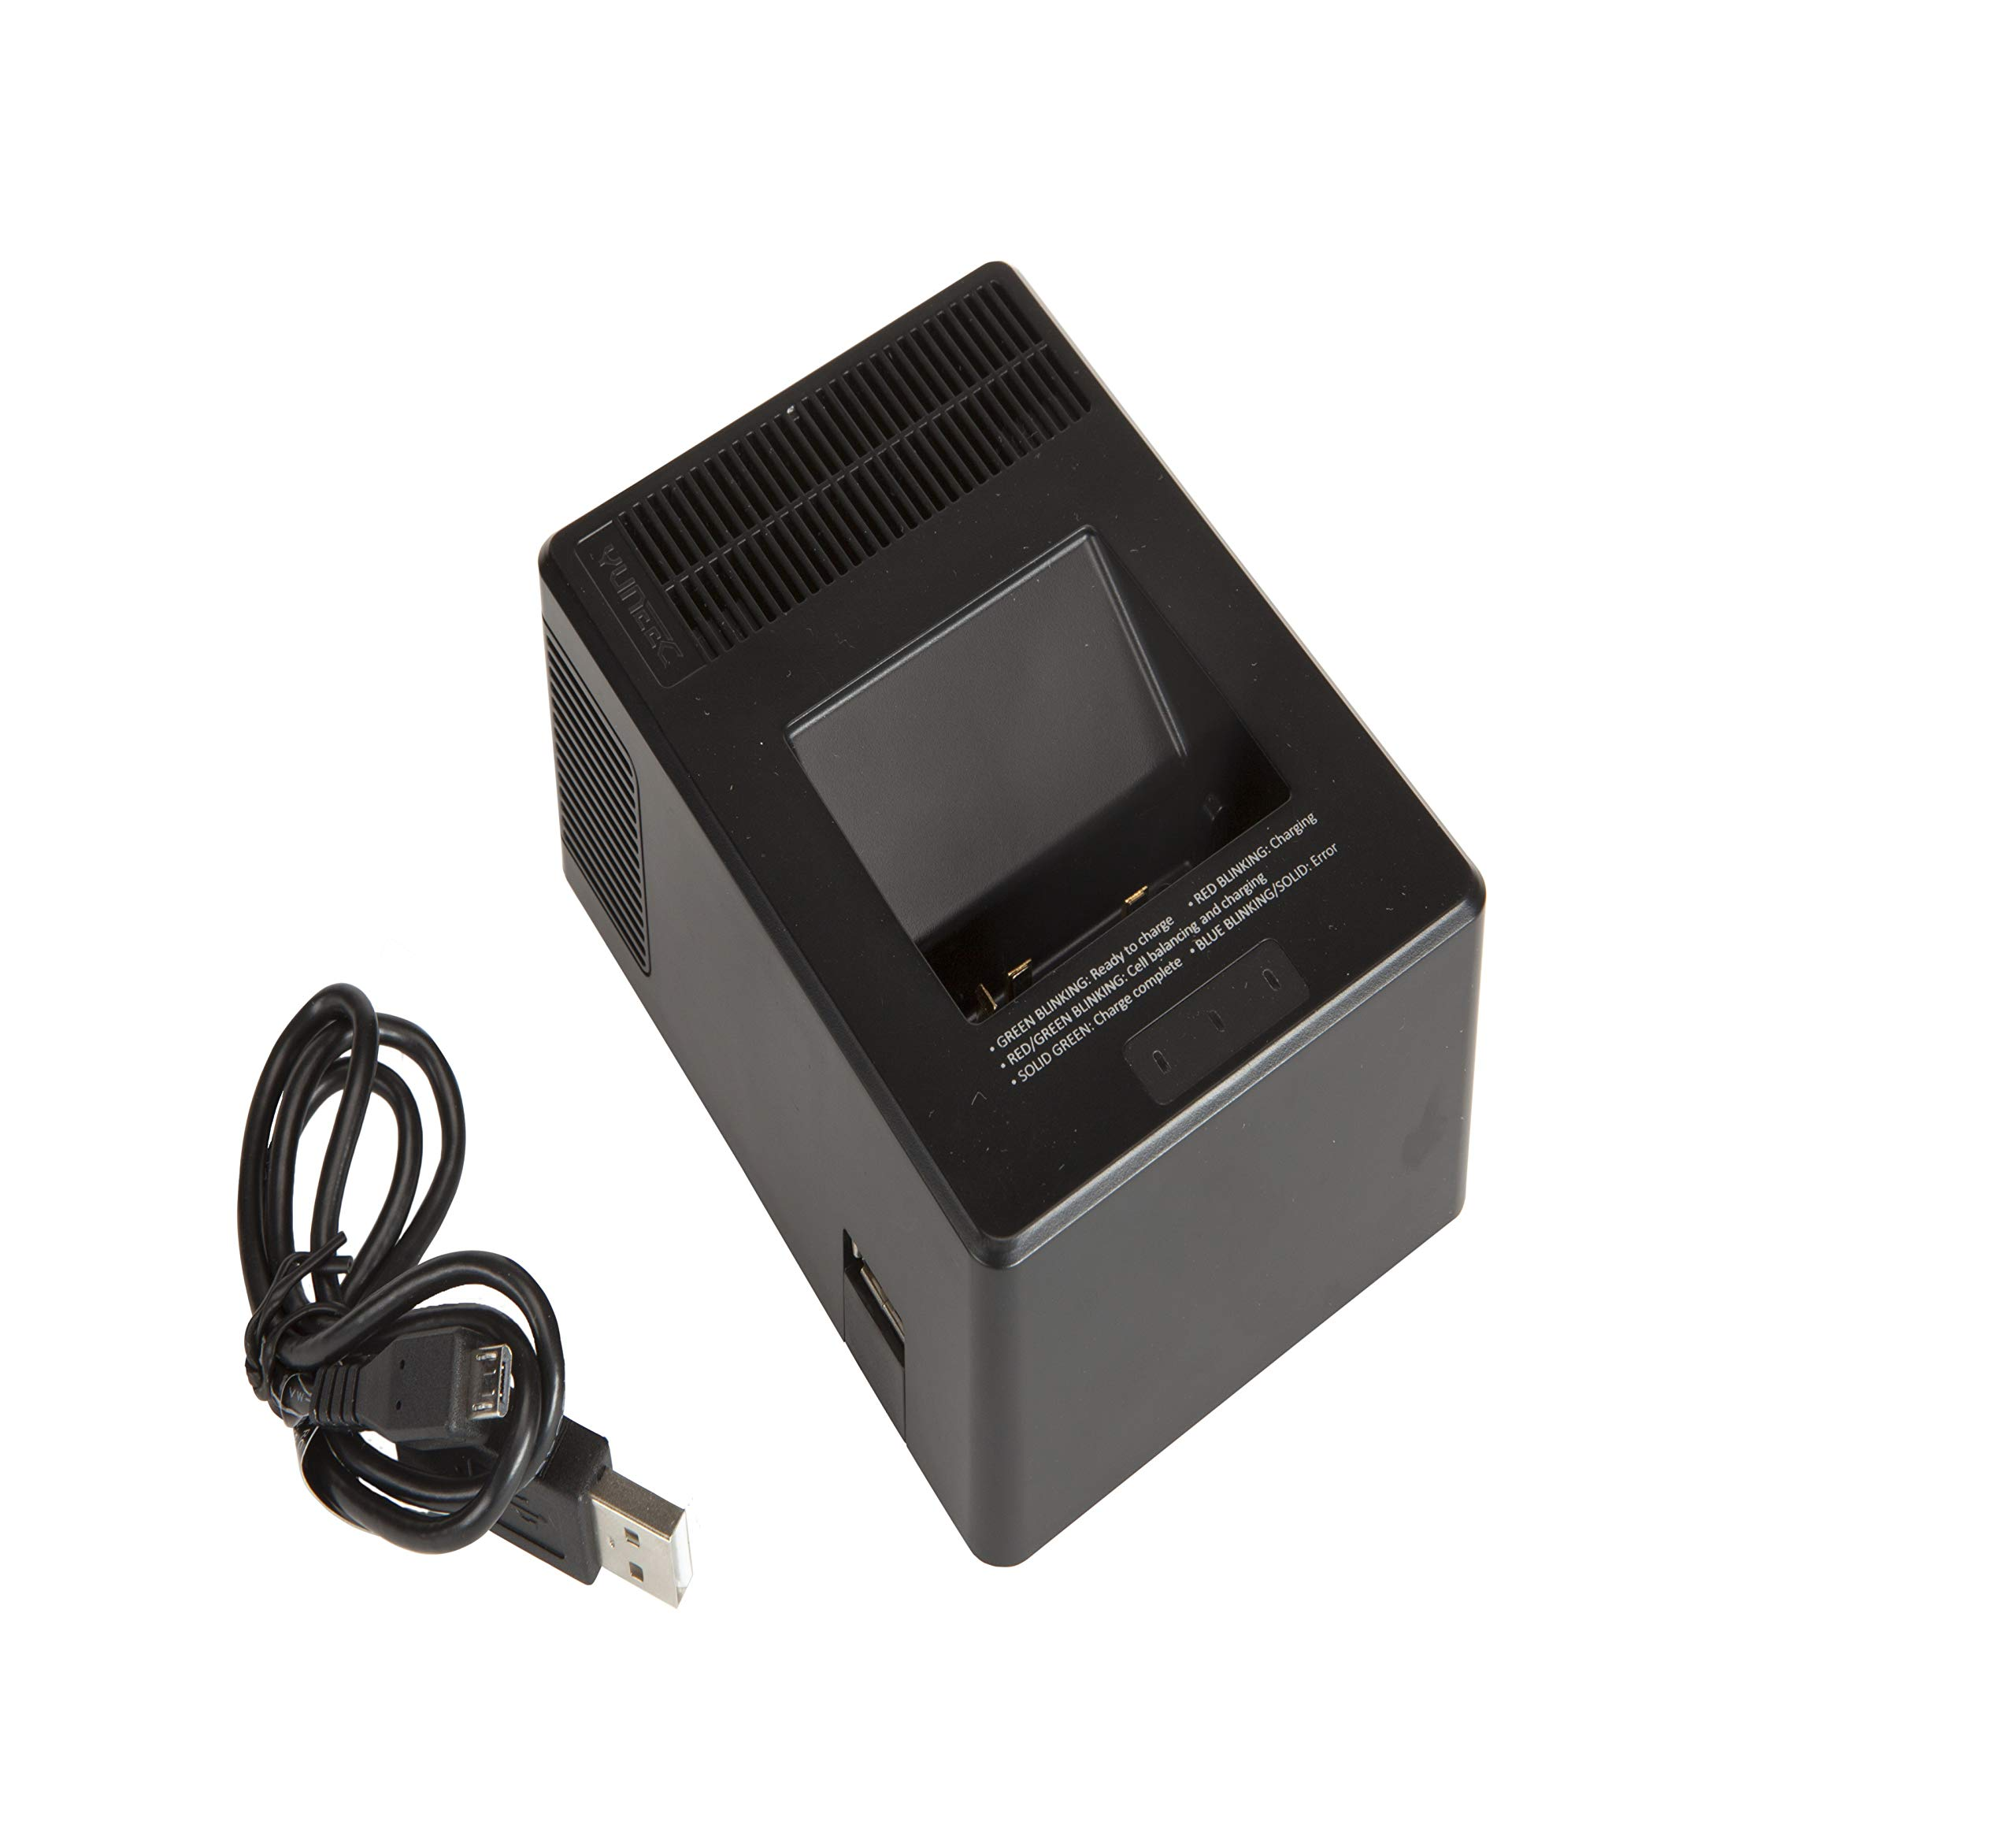 Typhoon H SC4000-4 4S 14.8V Balacing Smart Charger by Yuneec